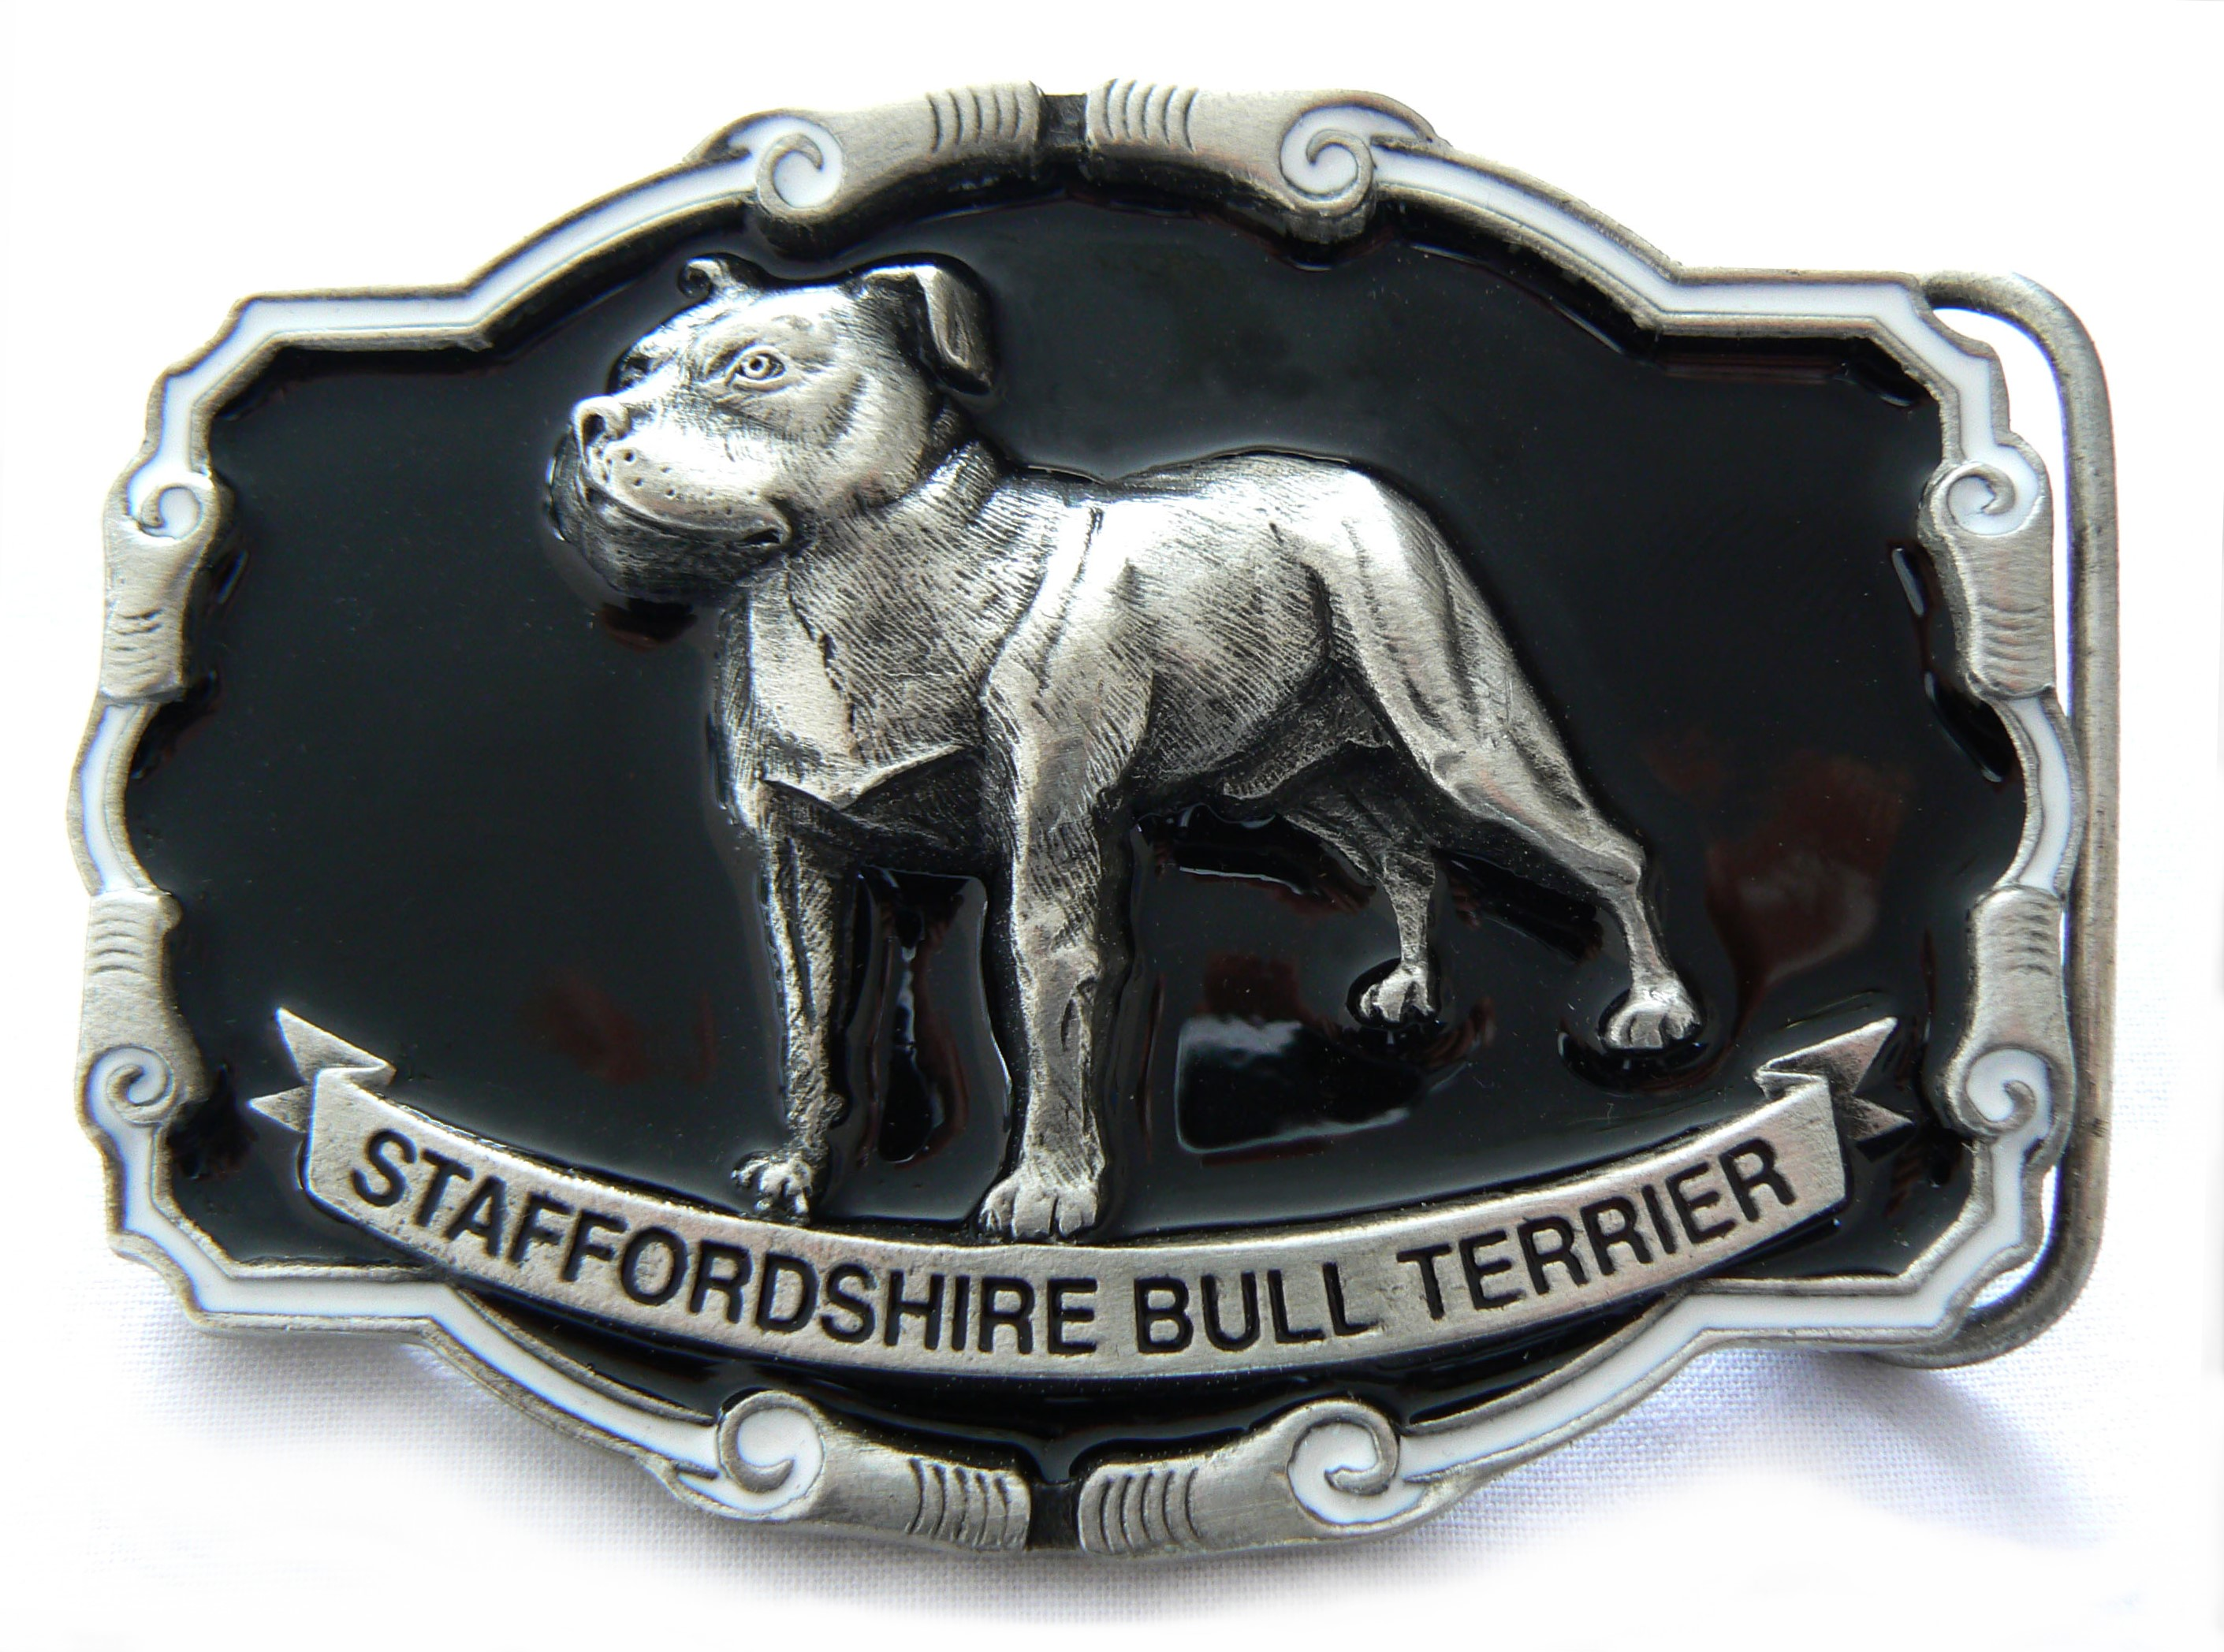 Staff Bull Terrier Buckle